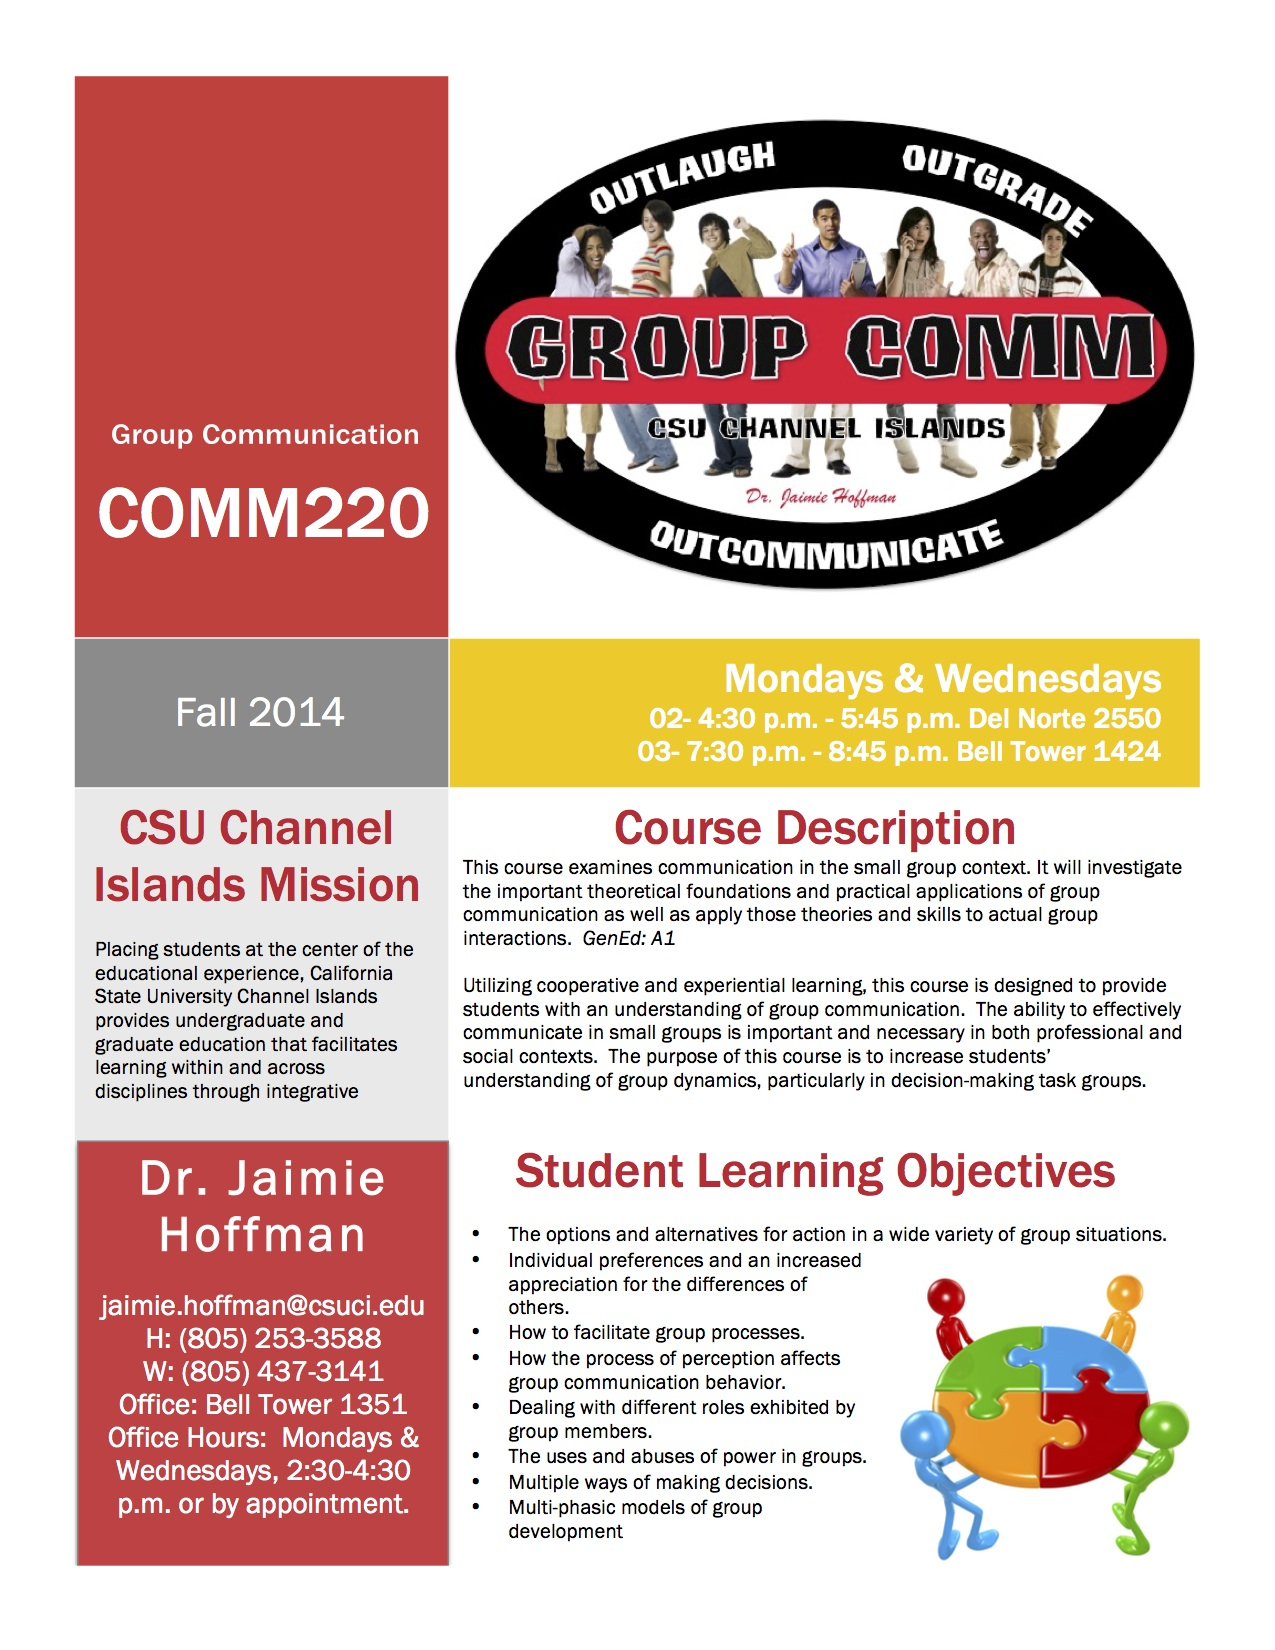 1 Design_Course_Syllabus_Hoffman_COMM_220_Fall_2014